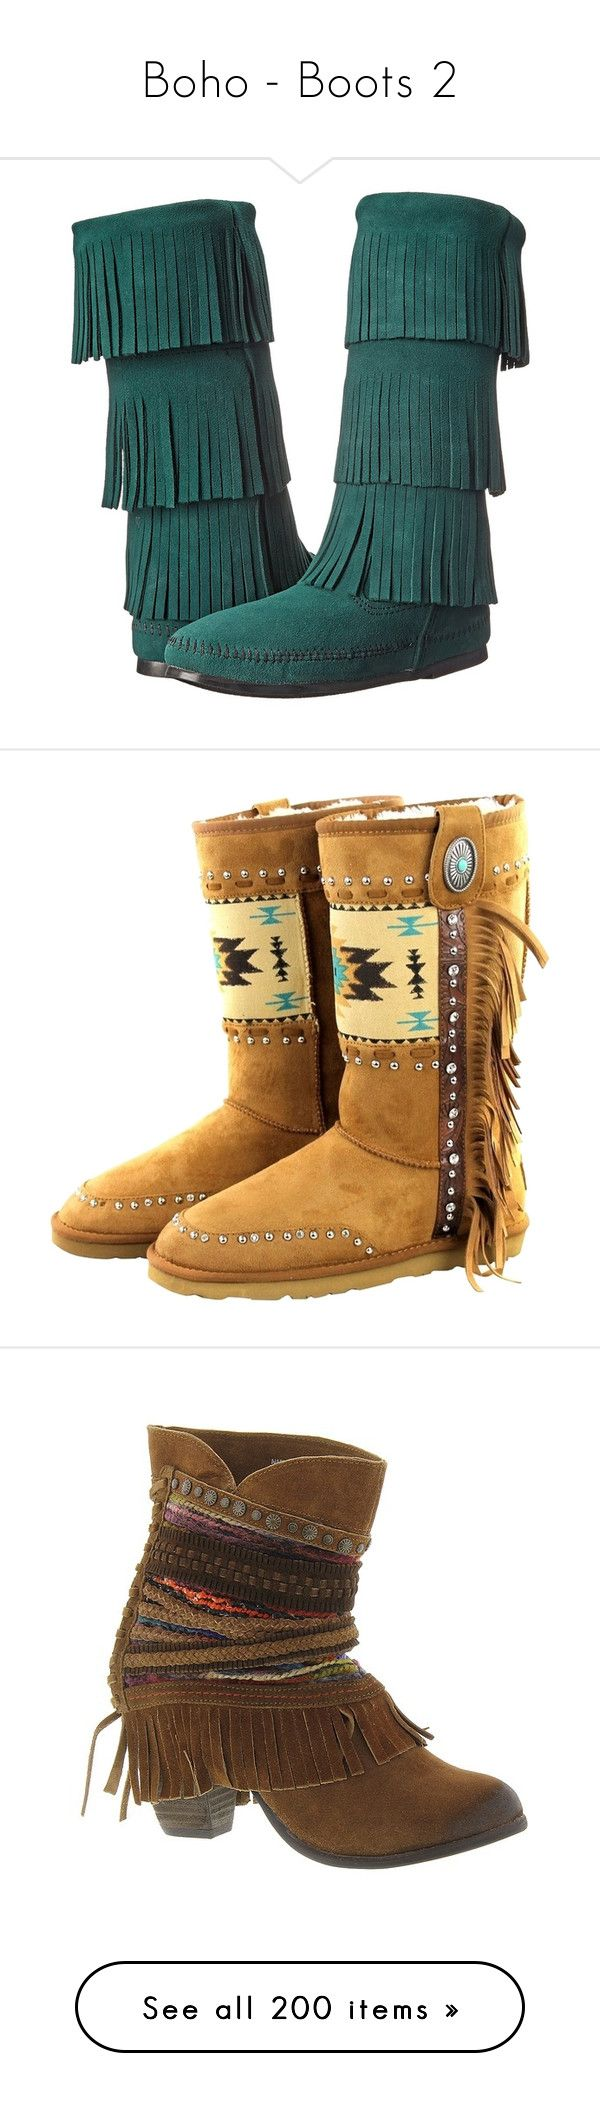 """""""Boho - Boots 2"""" by helenehrenhofer ❤ liked on Polyvore featuring shoes, boots, mid-calf boots, slipon boots, minnetonka, mid calf fringe boots, long fringe boots, slip on boots, brown and pre owned shoes"""